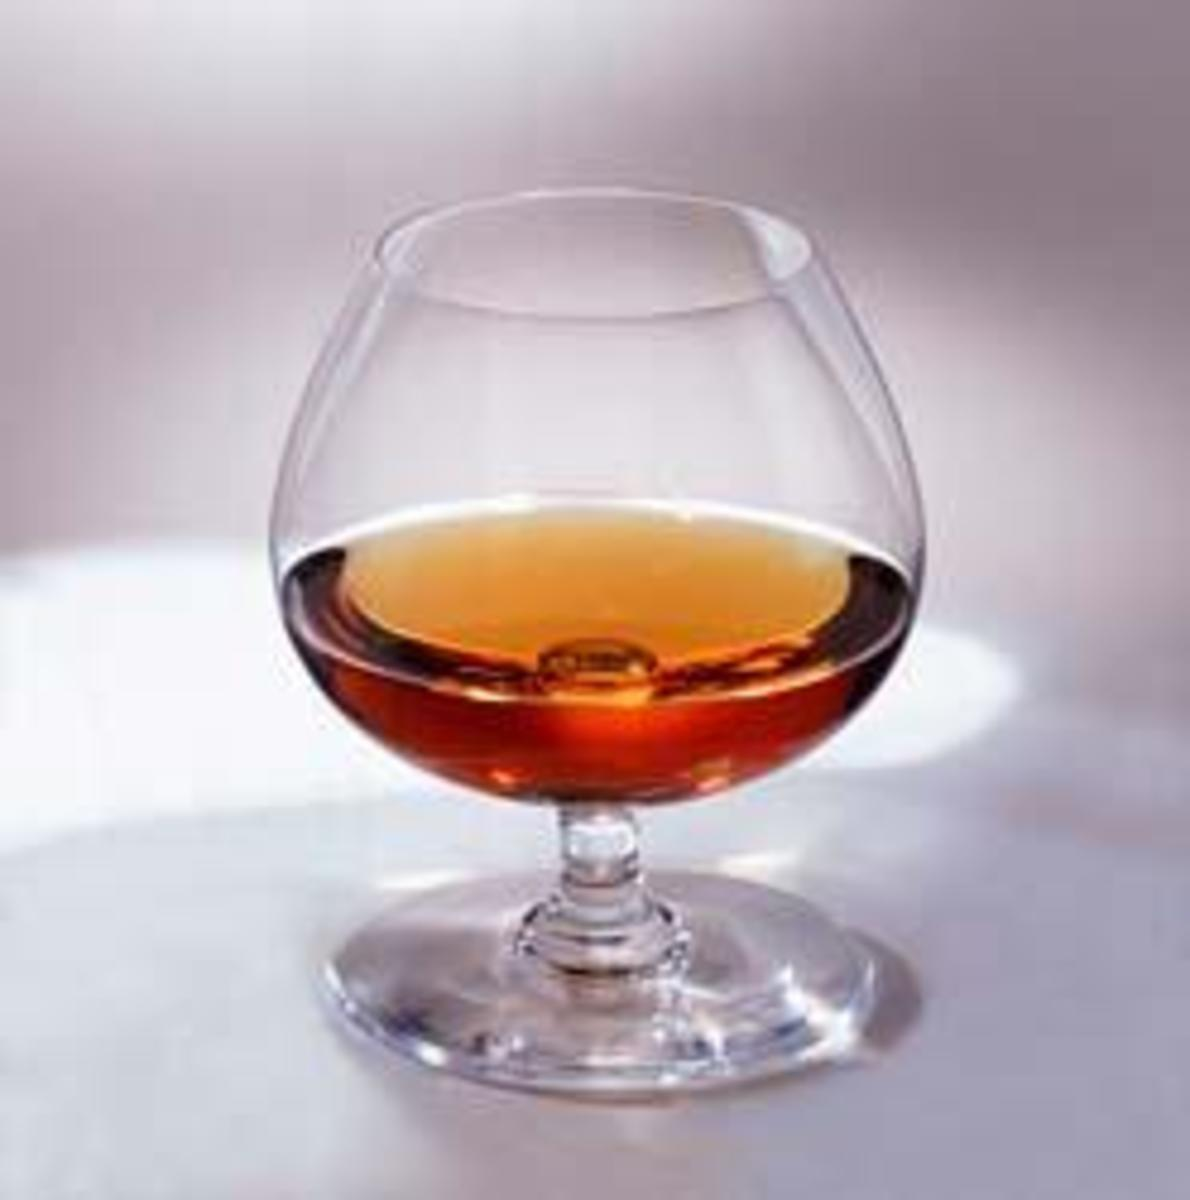 How to Drink Cognac, Brandy & Eau De Vie - An Illustrated Guide / Tips